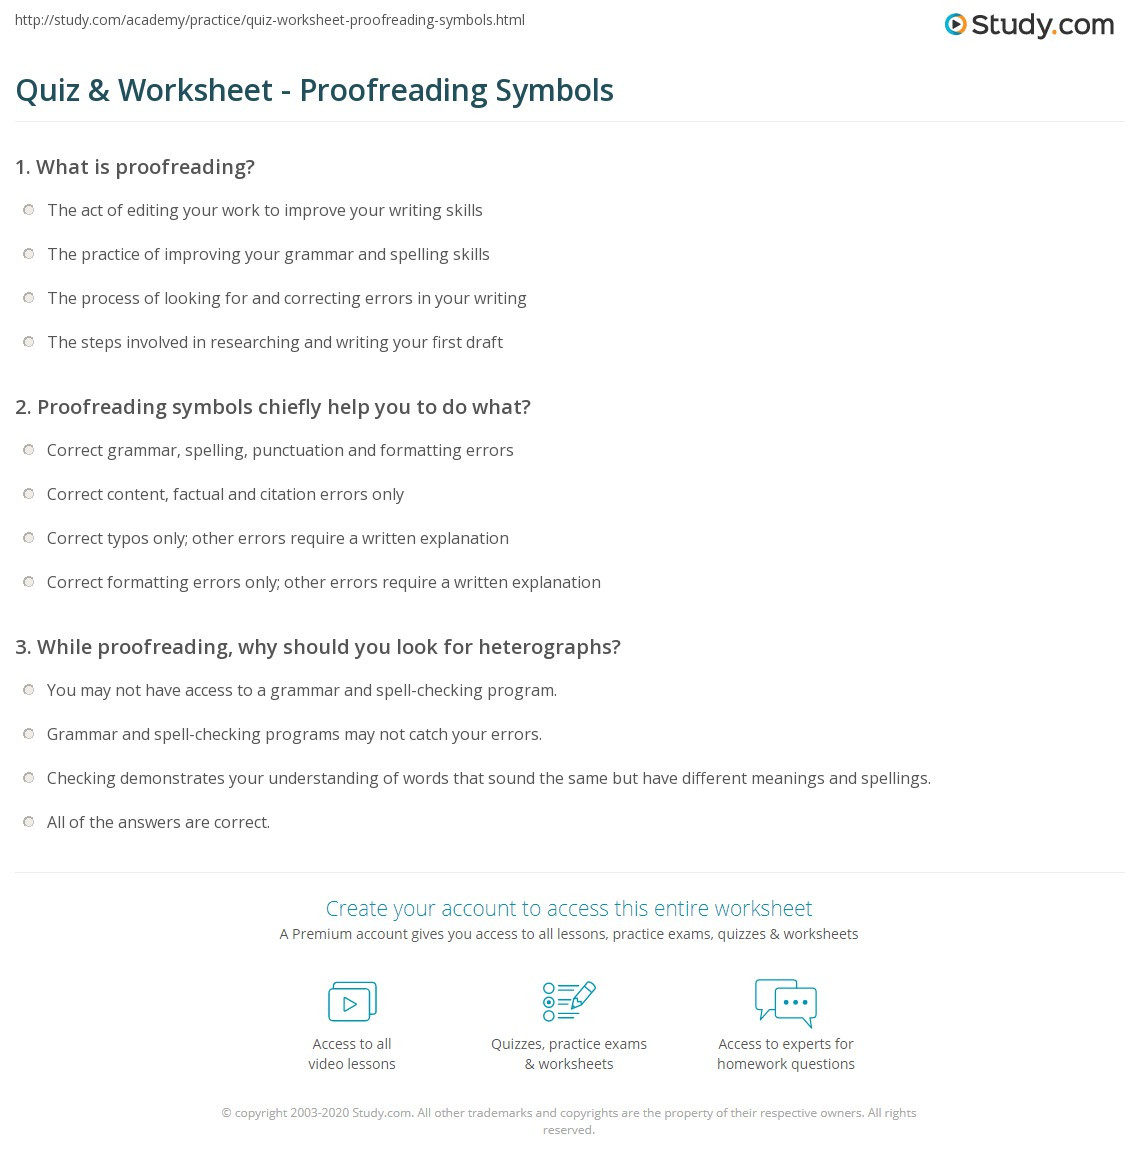 Proofreading Practice Middle School Quiz & Worksheet Proofreading Symbols